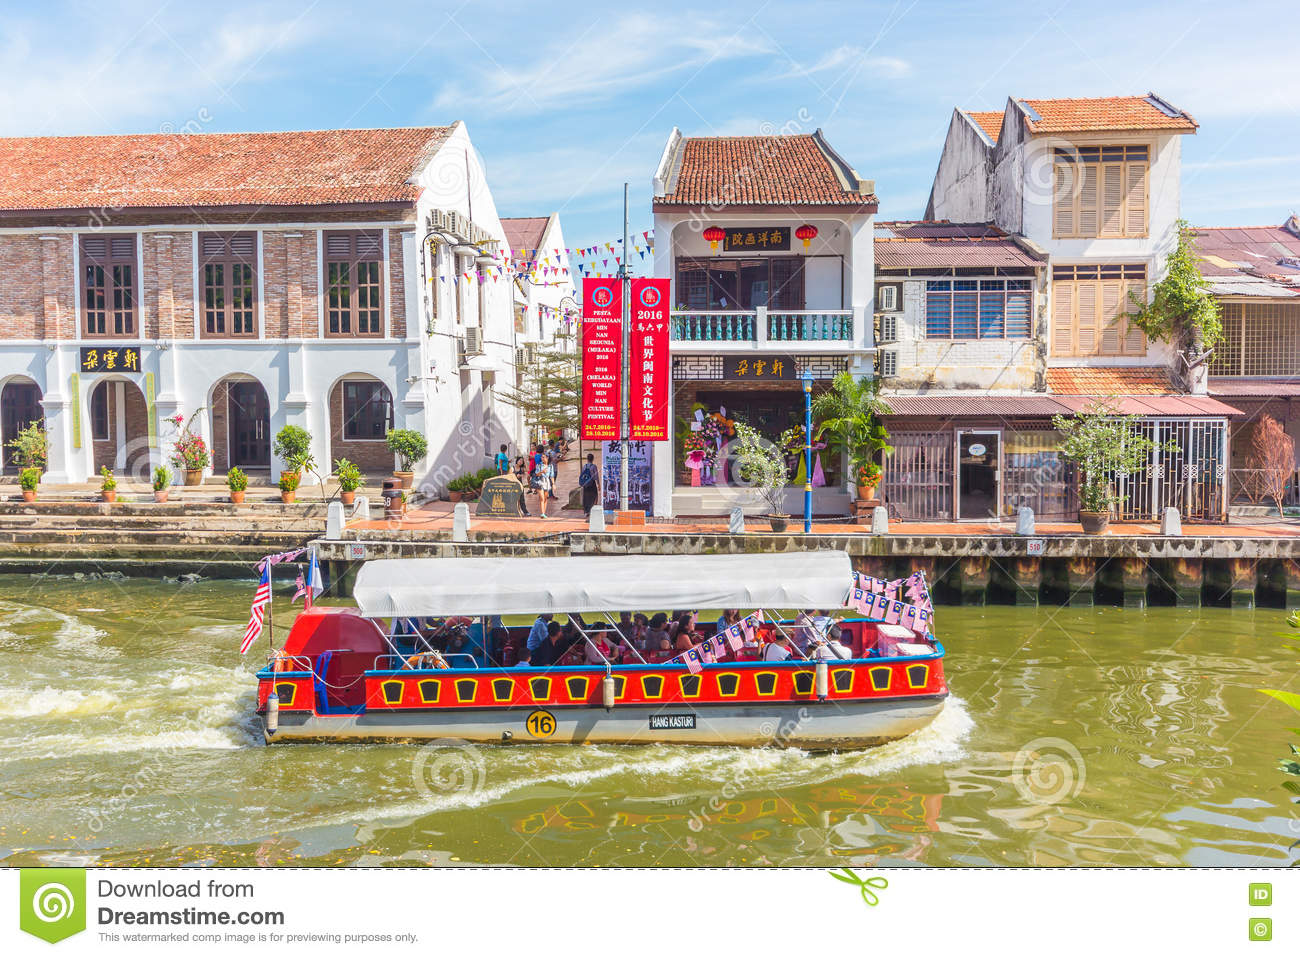 5d19d1bf7fe7 ... 2016  Cruise tour boat sails on the Malacca River in Malacca.  Rehabilitation of the Malacca River to develop river tourism started in July  2002